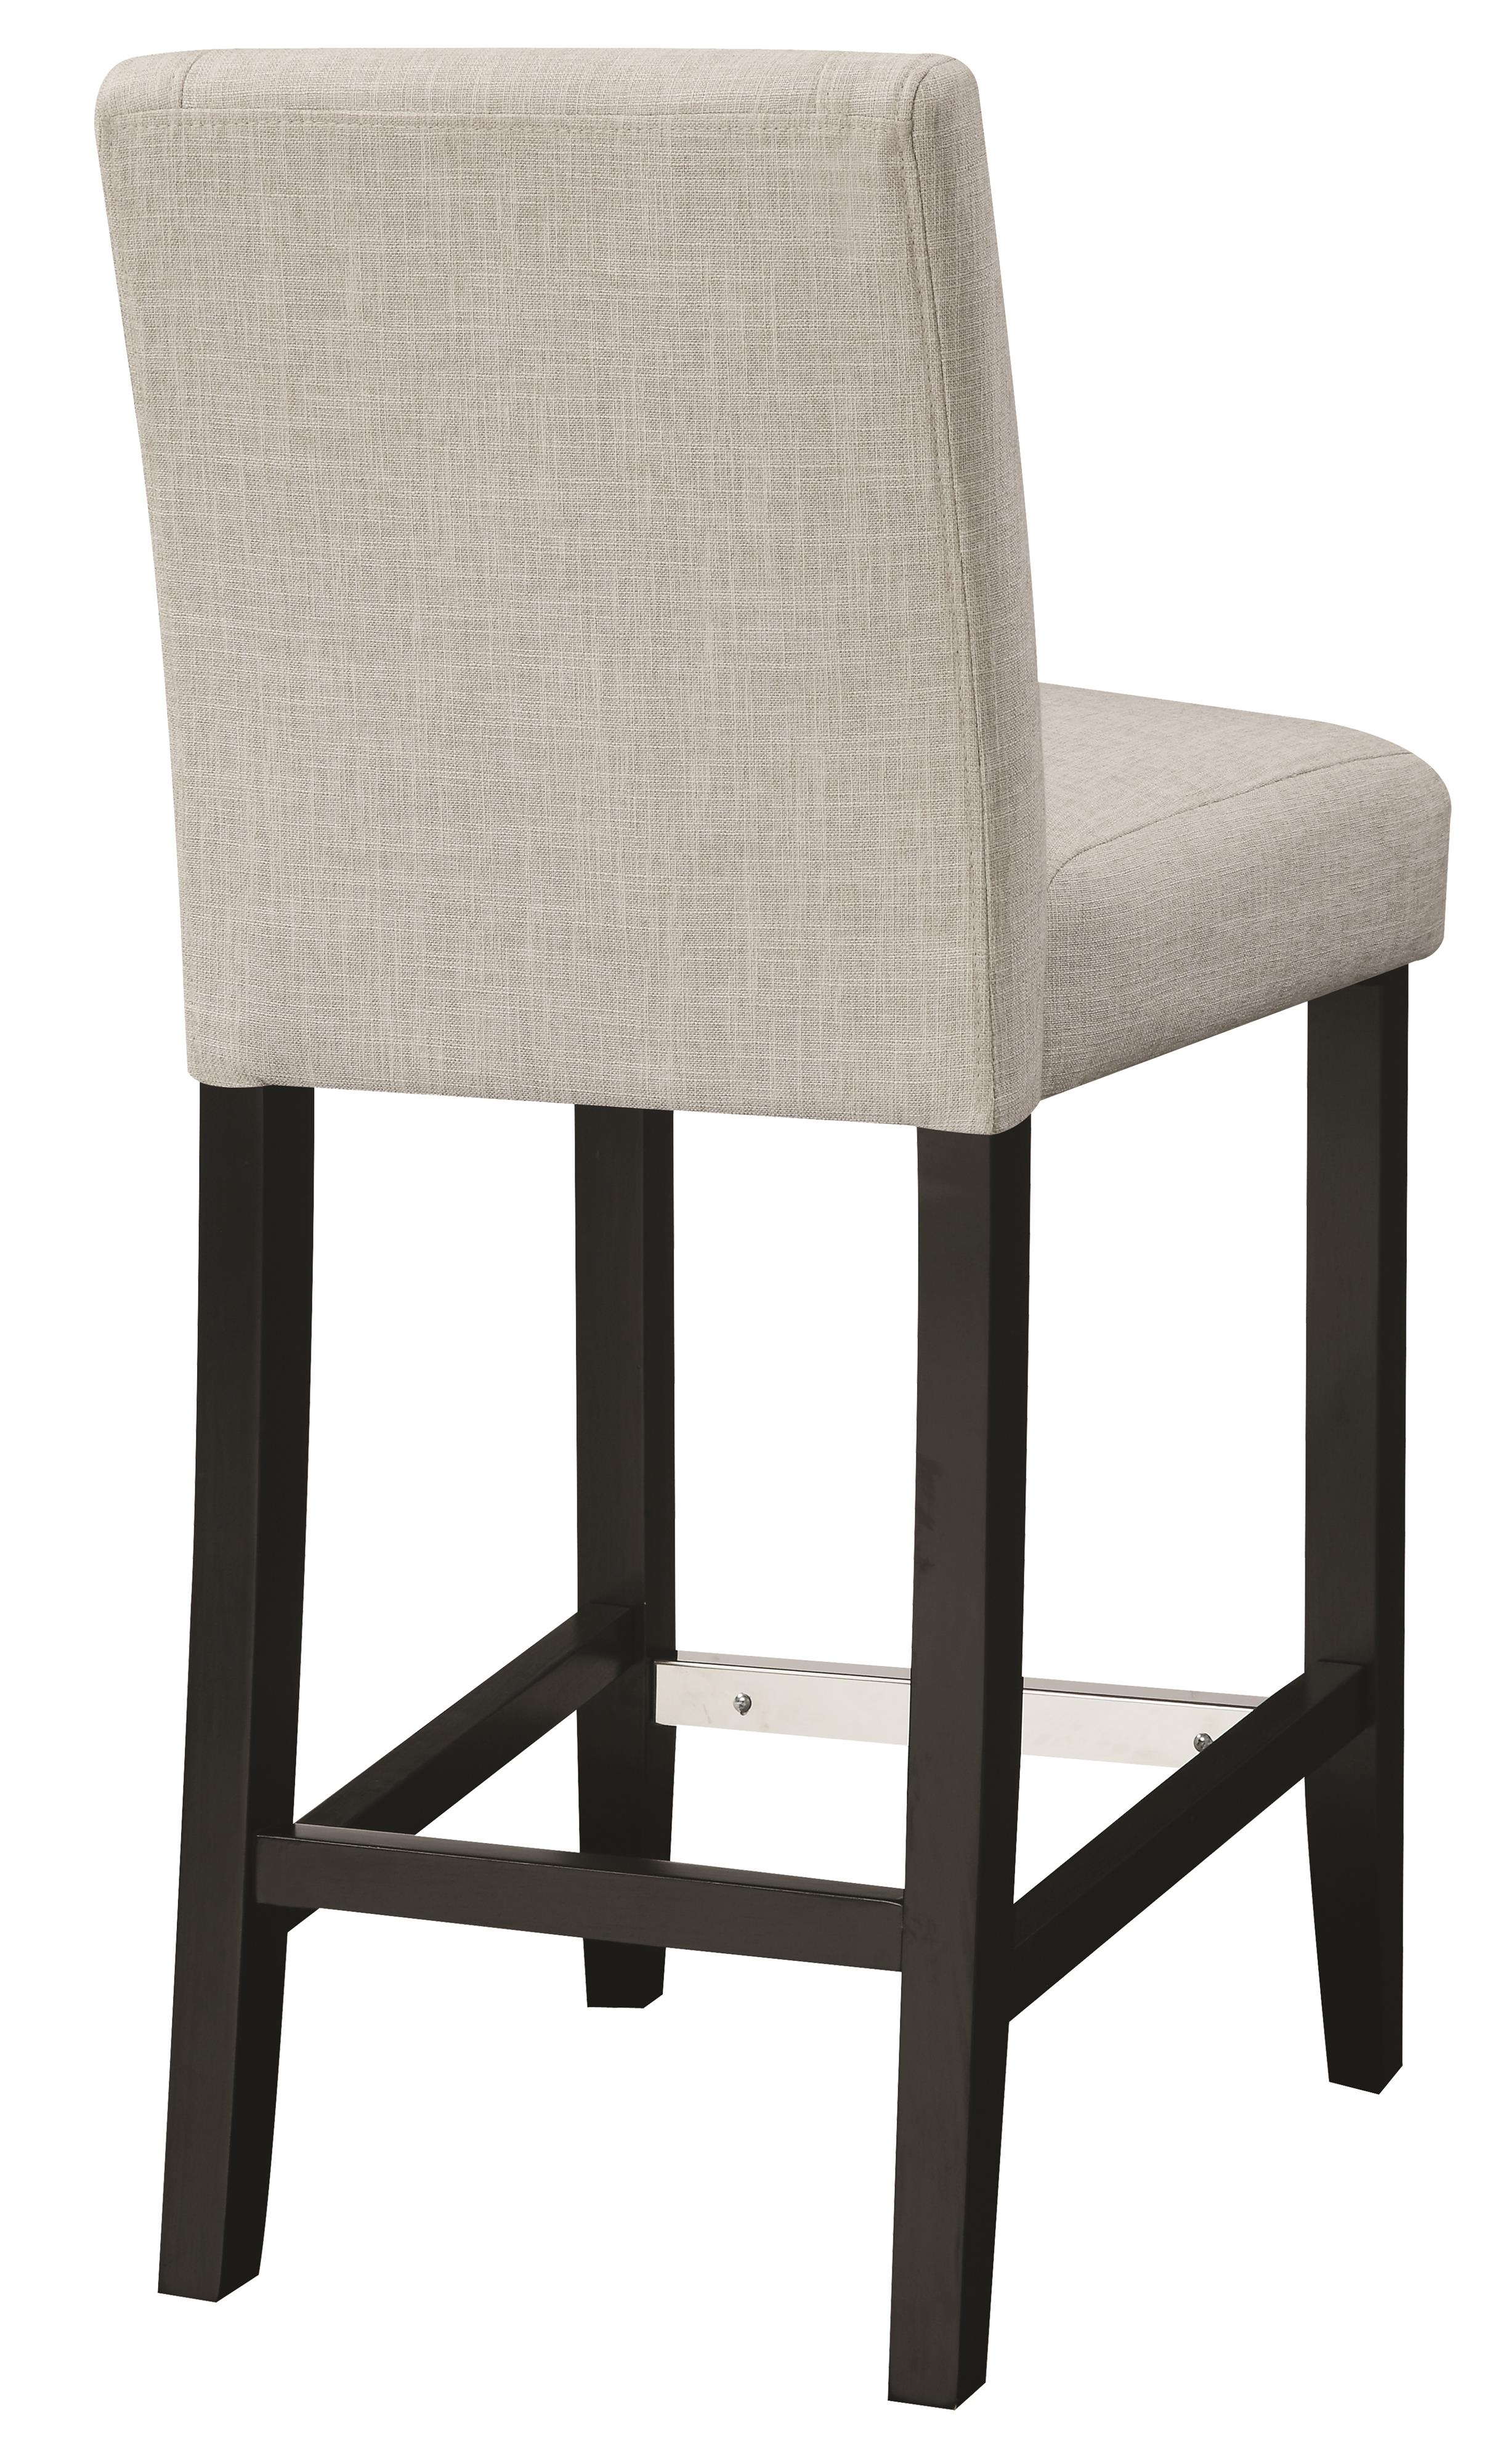 Coaster Dining Chairs And Bar Stools 130063 Upholstered